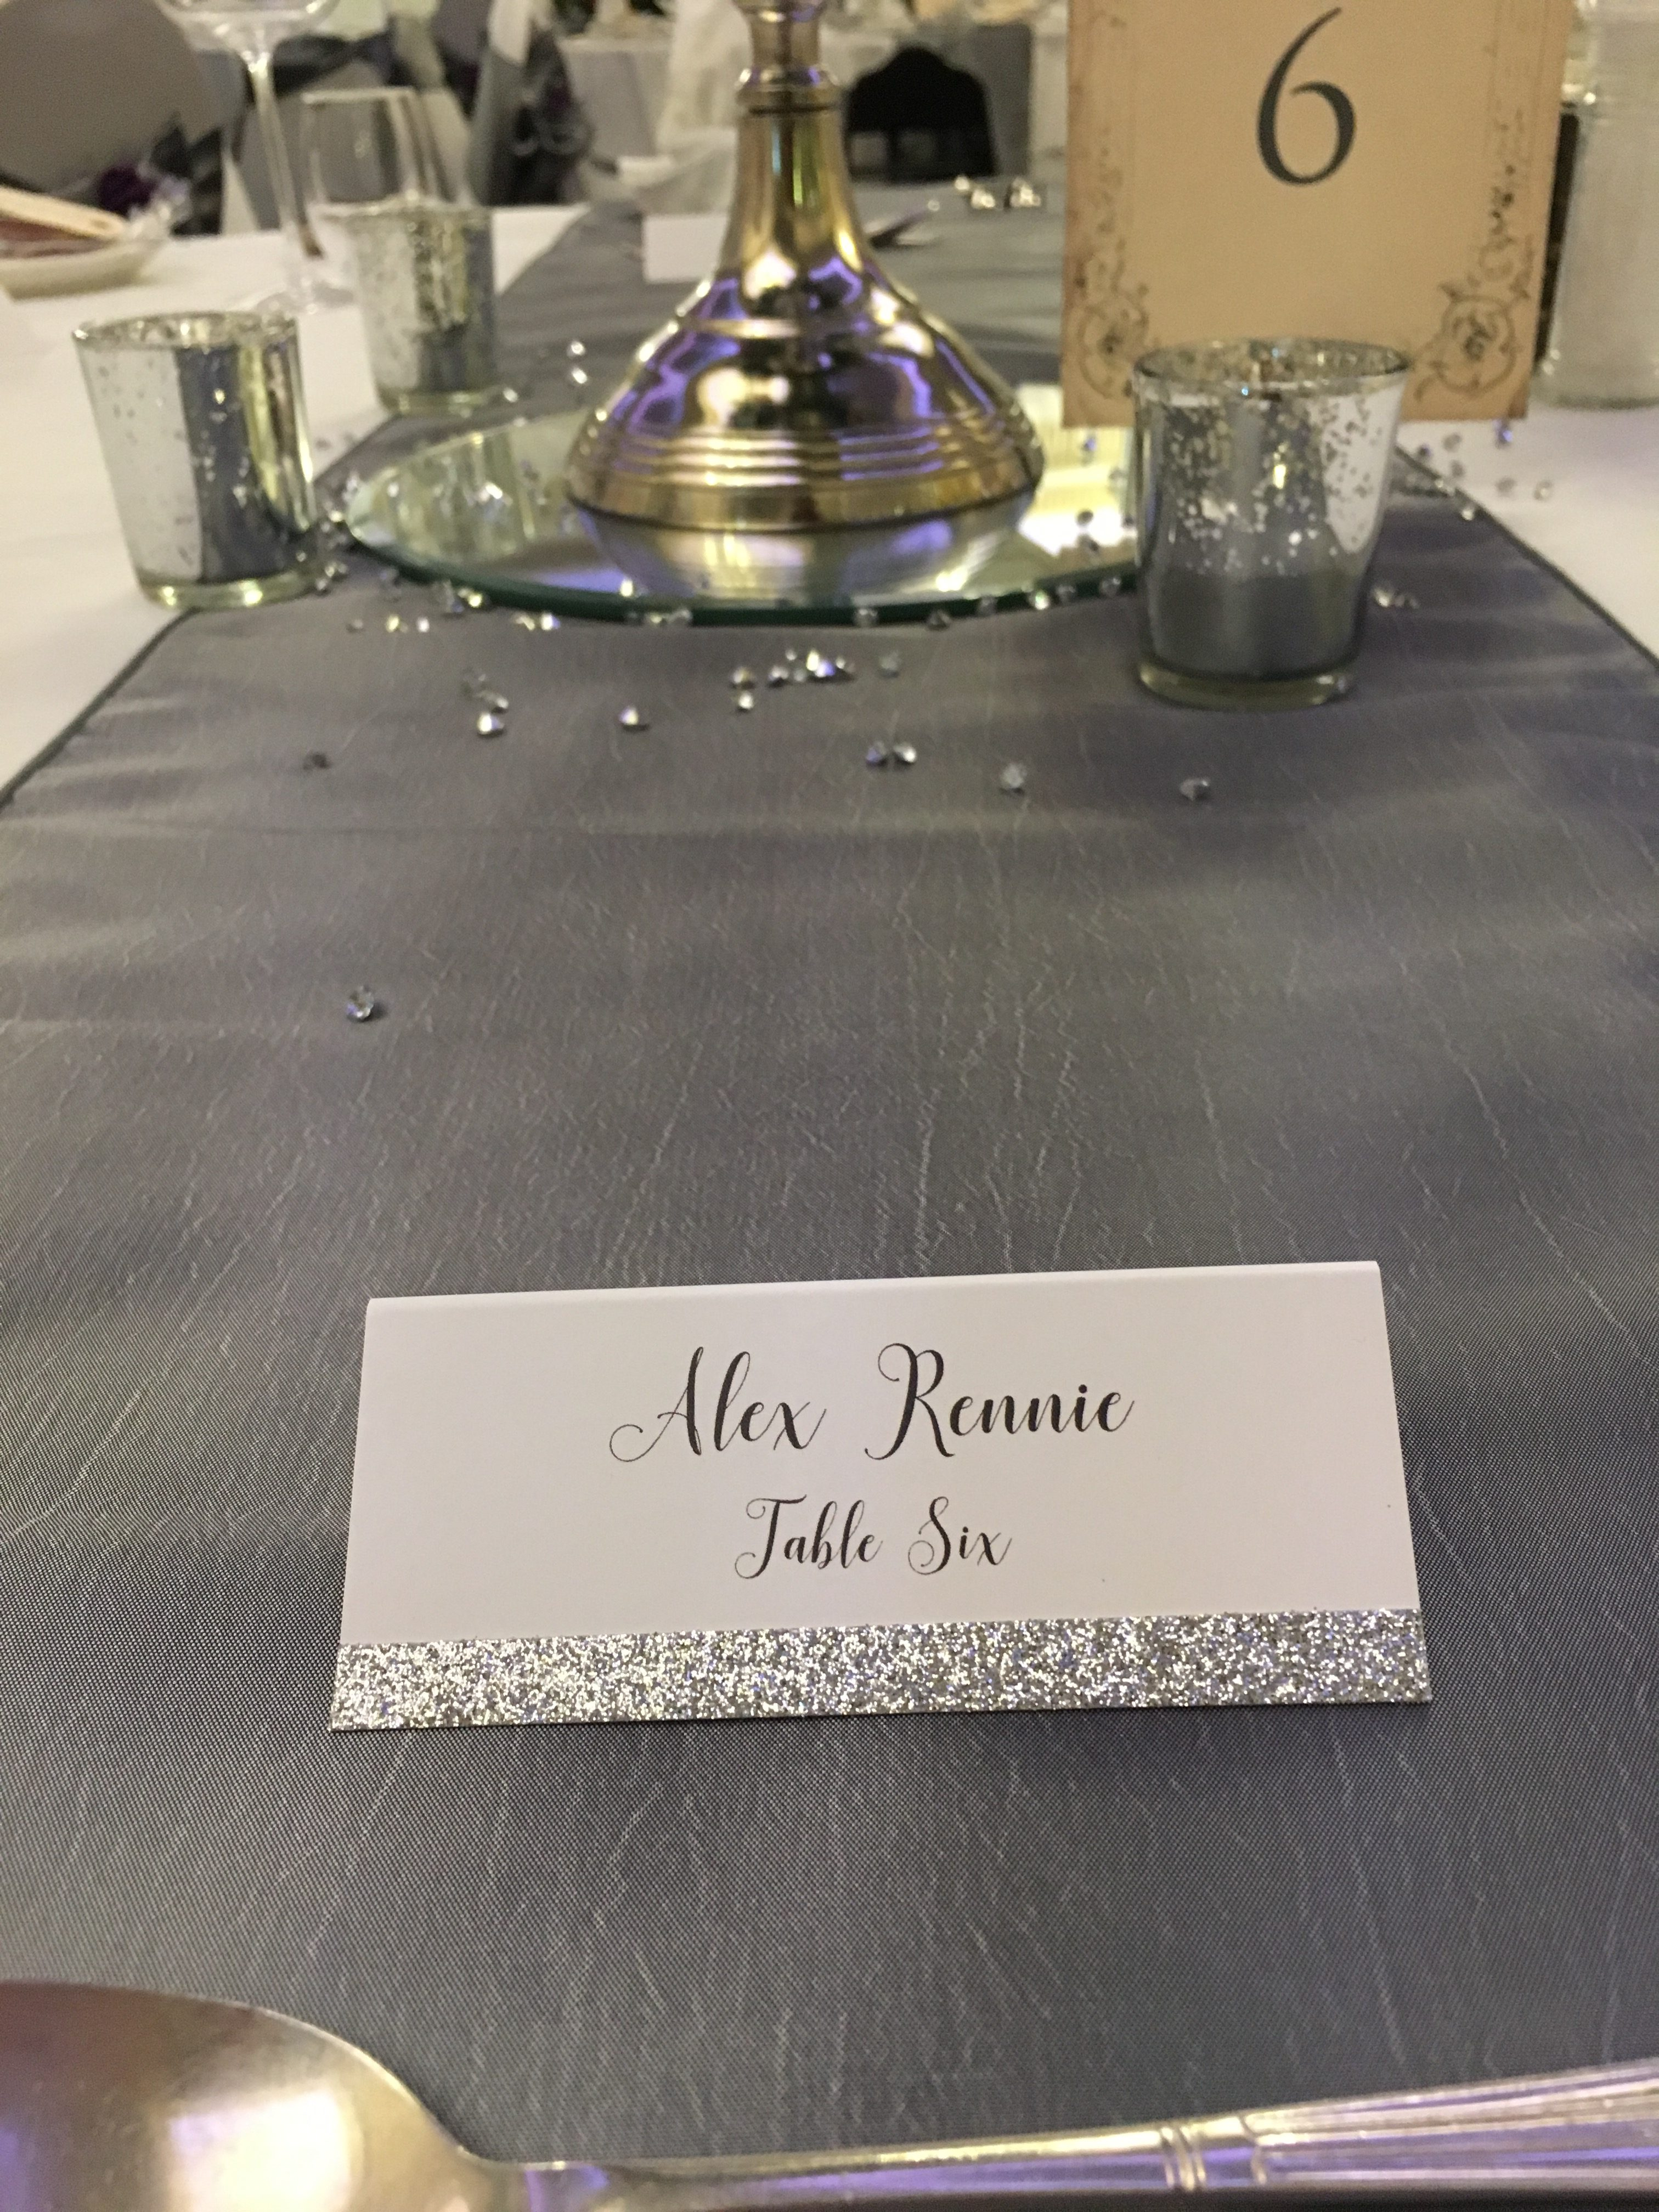 White with Glitter Place cards Sophia's Final Touch - Venue Styling - Weddings